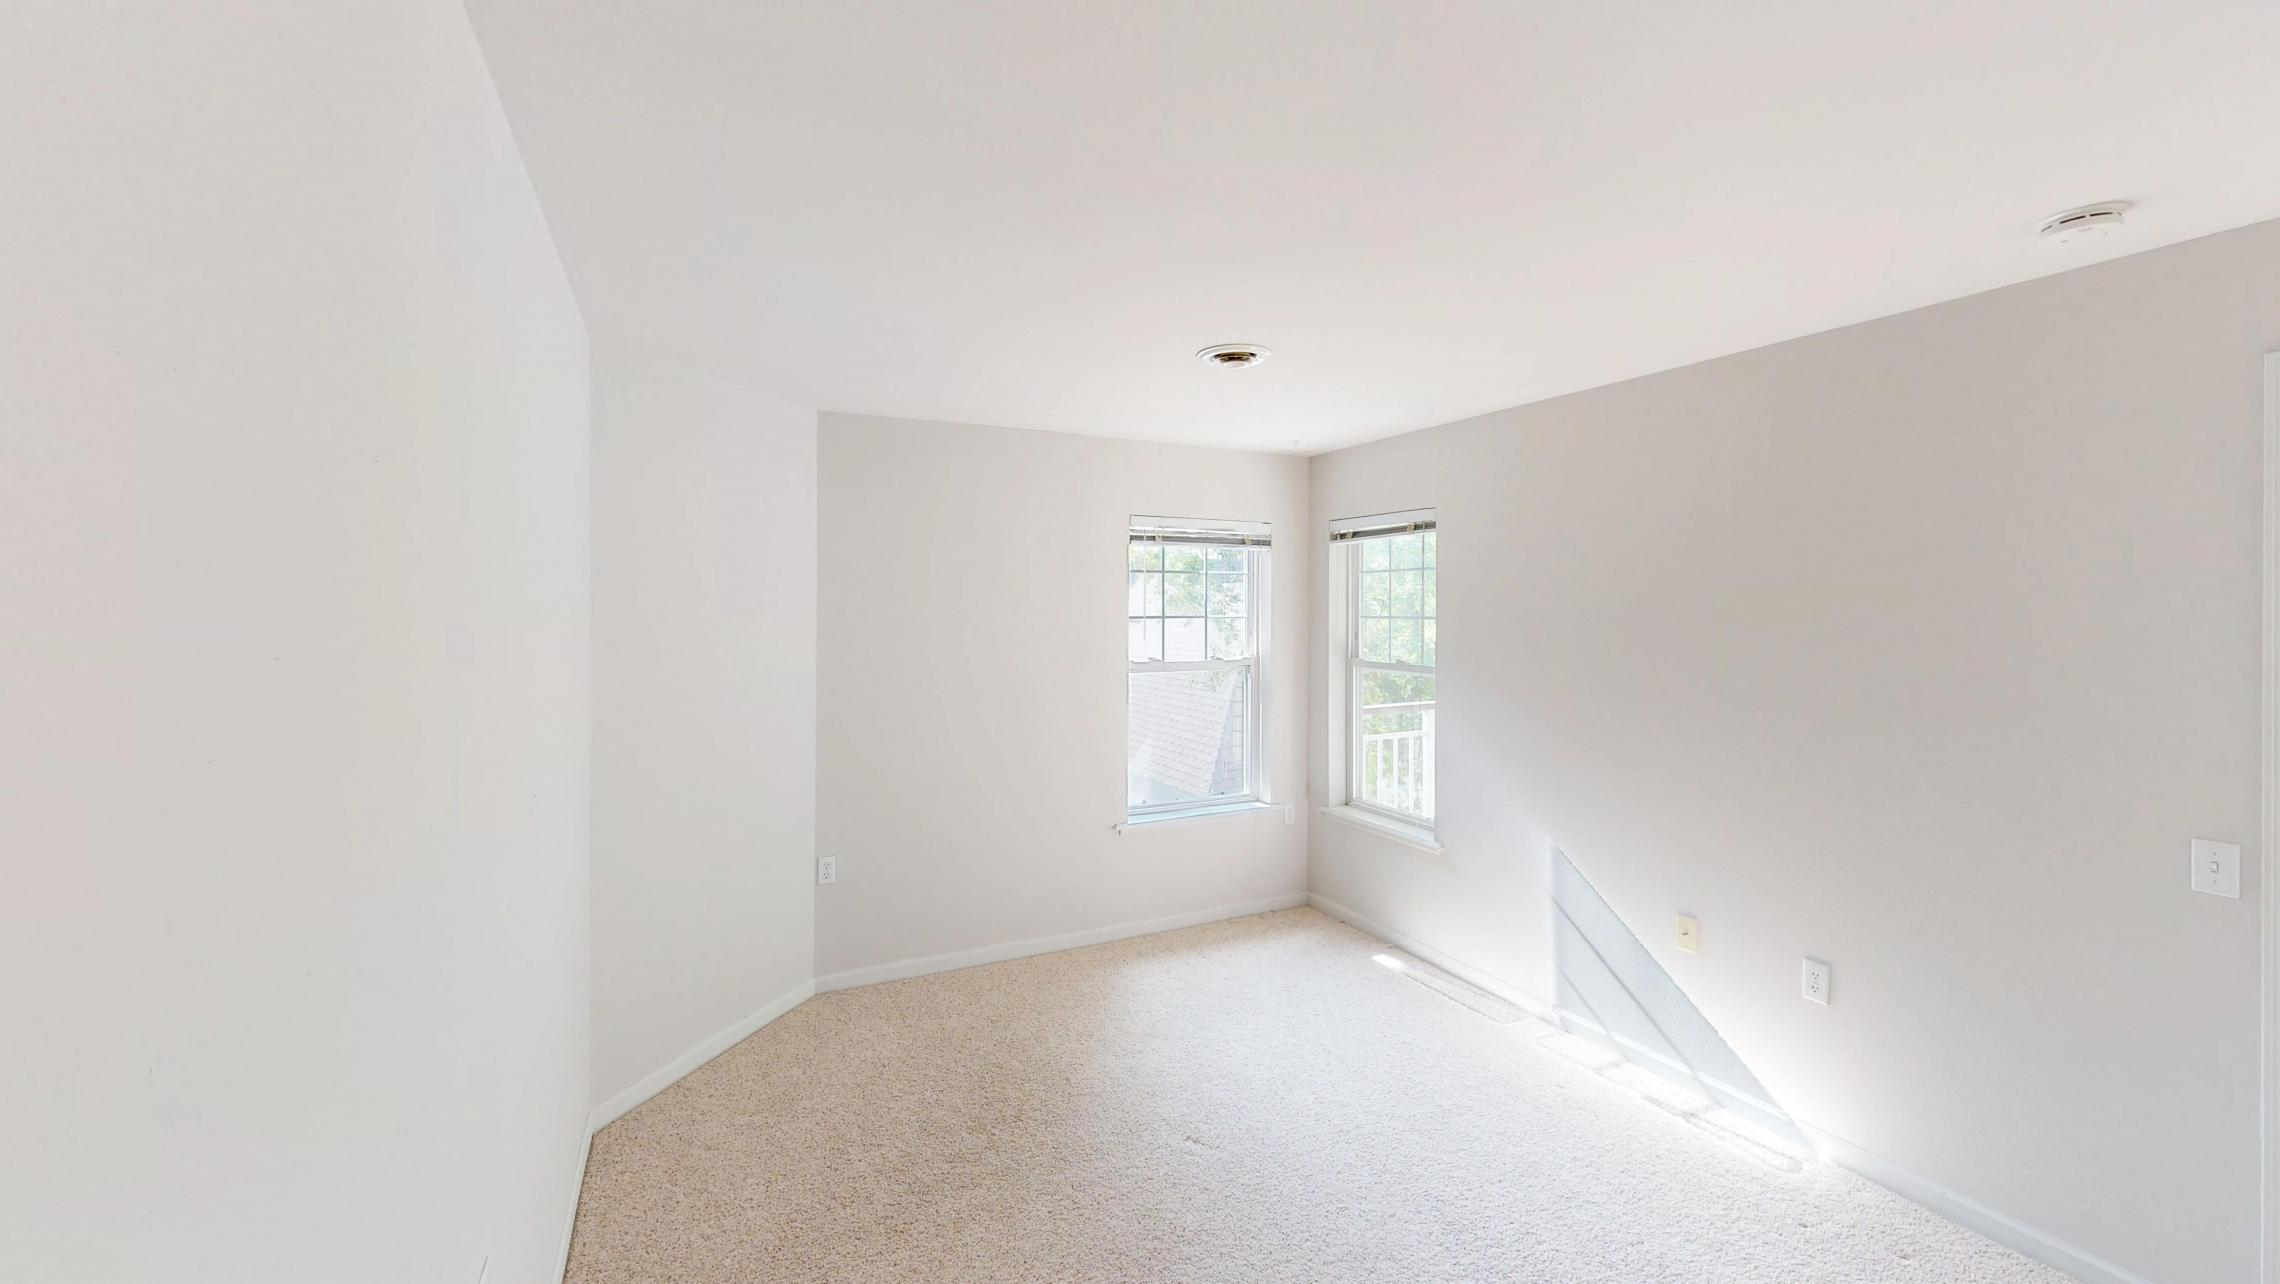 Wilson-Bay-Apartment-303-One-Bedroom-Downtown-Madison-Balcony-Top-Floor-Vaulted-Ceiling-Living